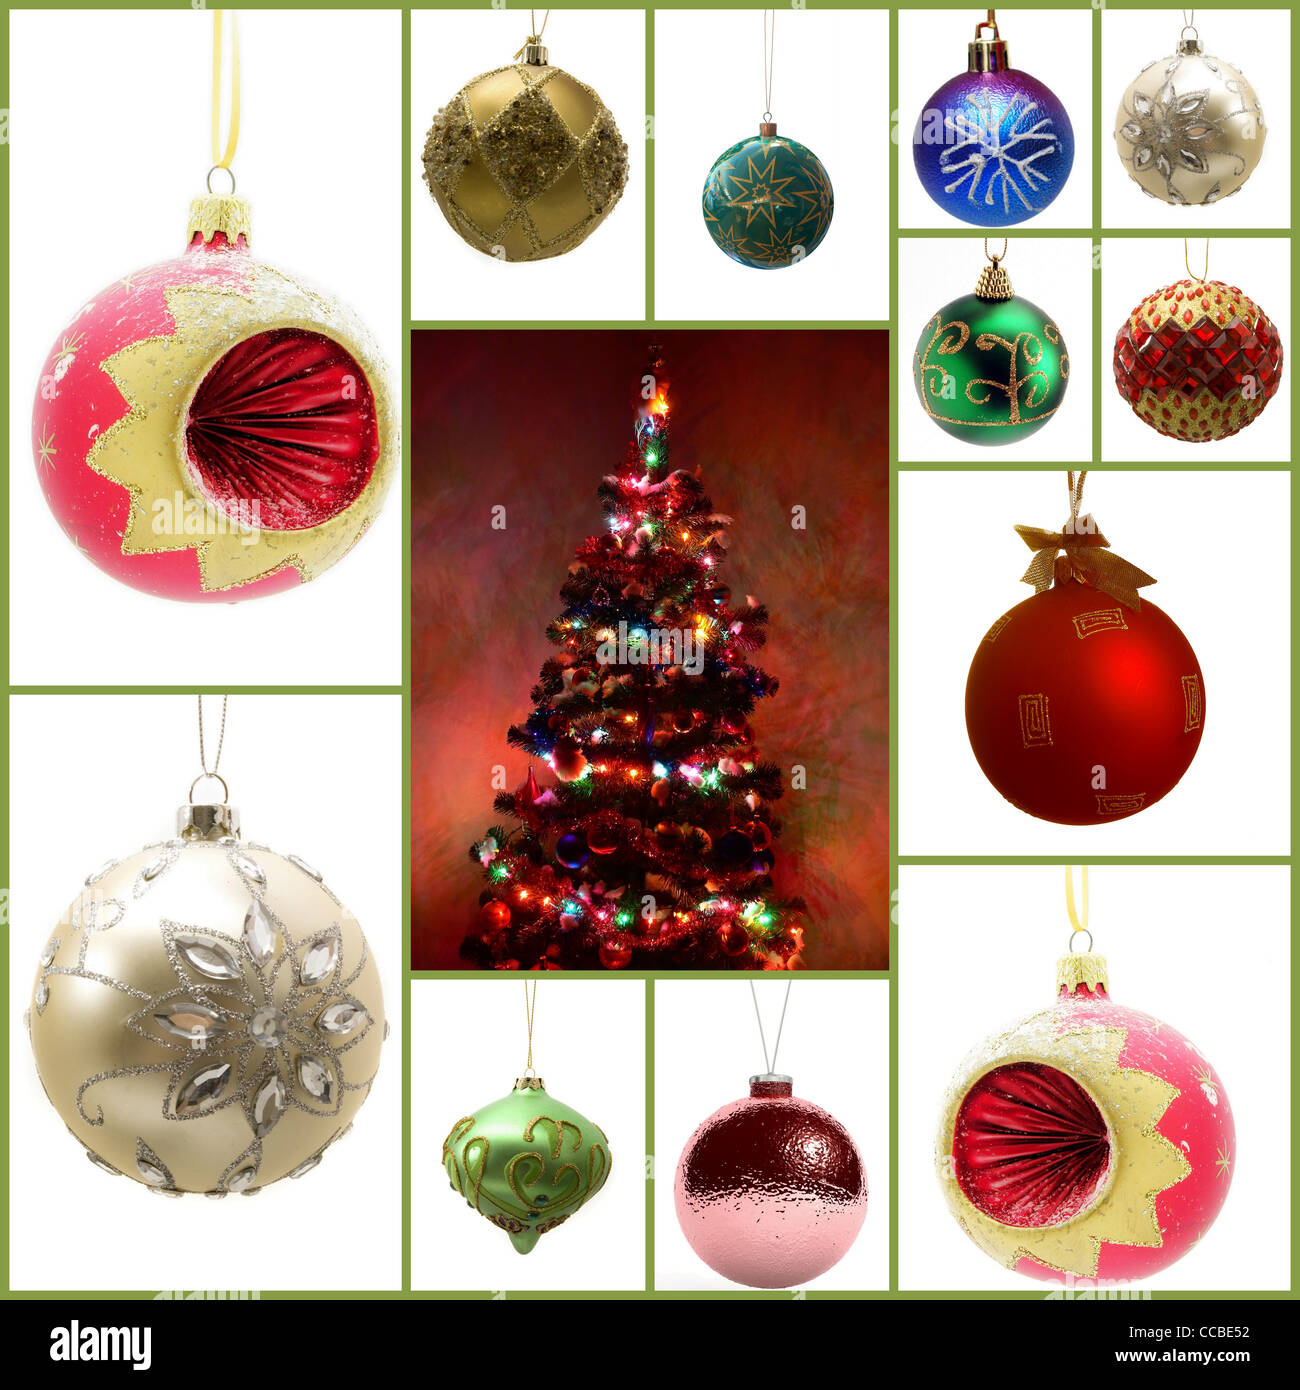 Set of 12 Christmas balls Ornaments Photos And Images - Stock Image